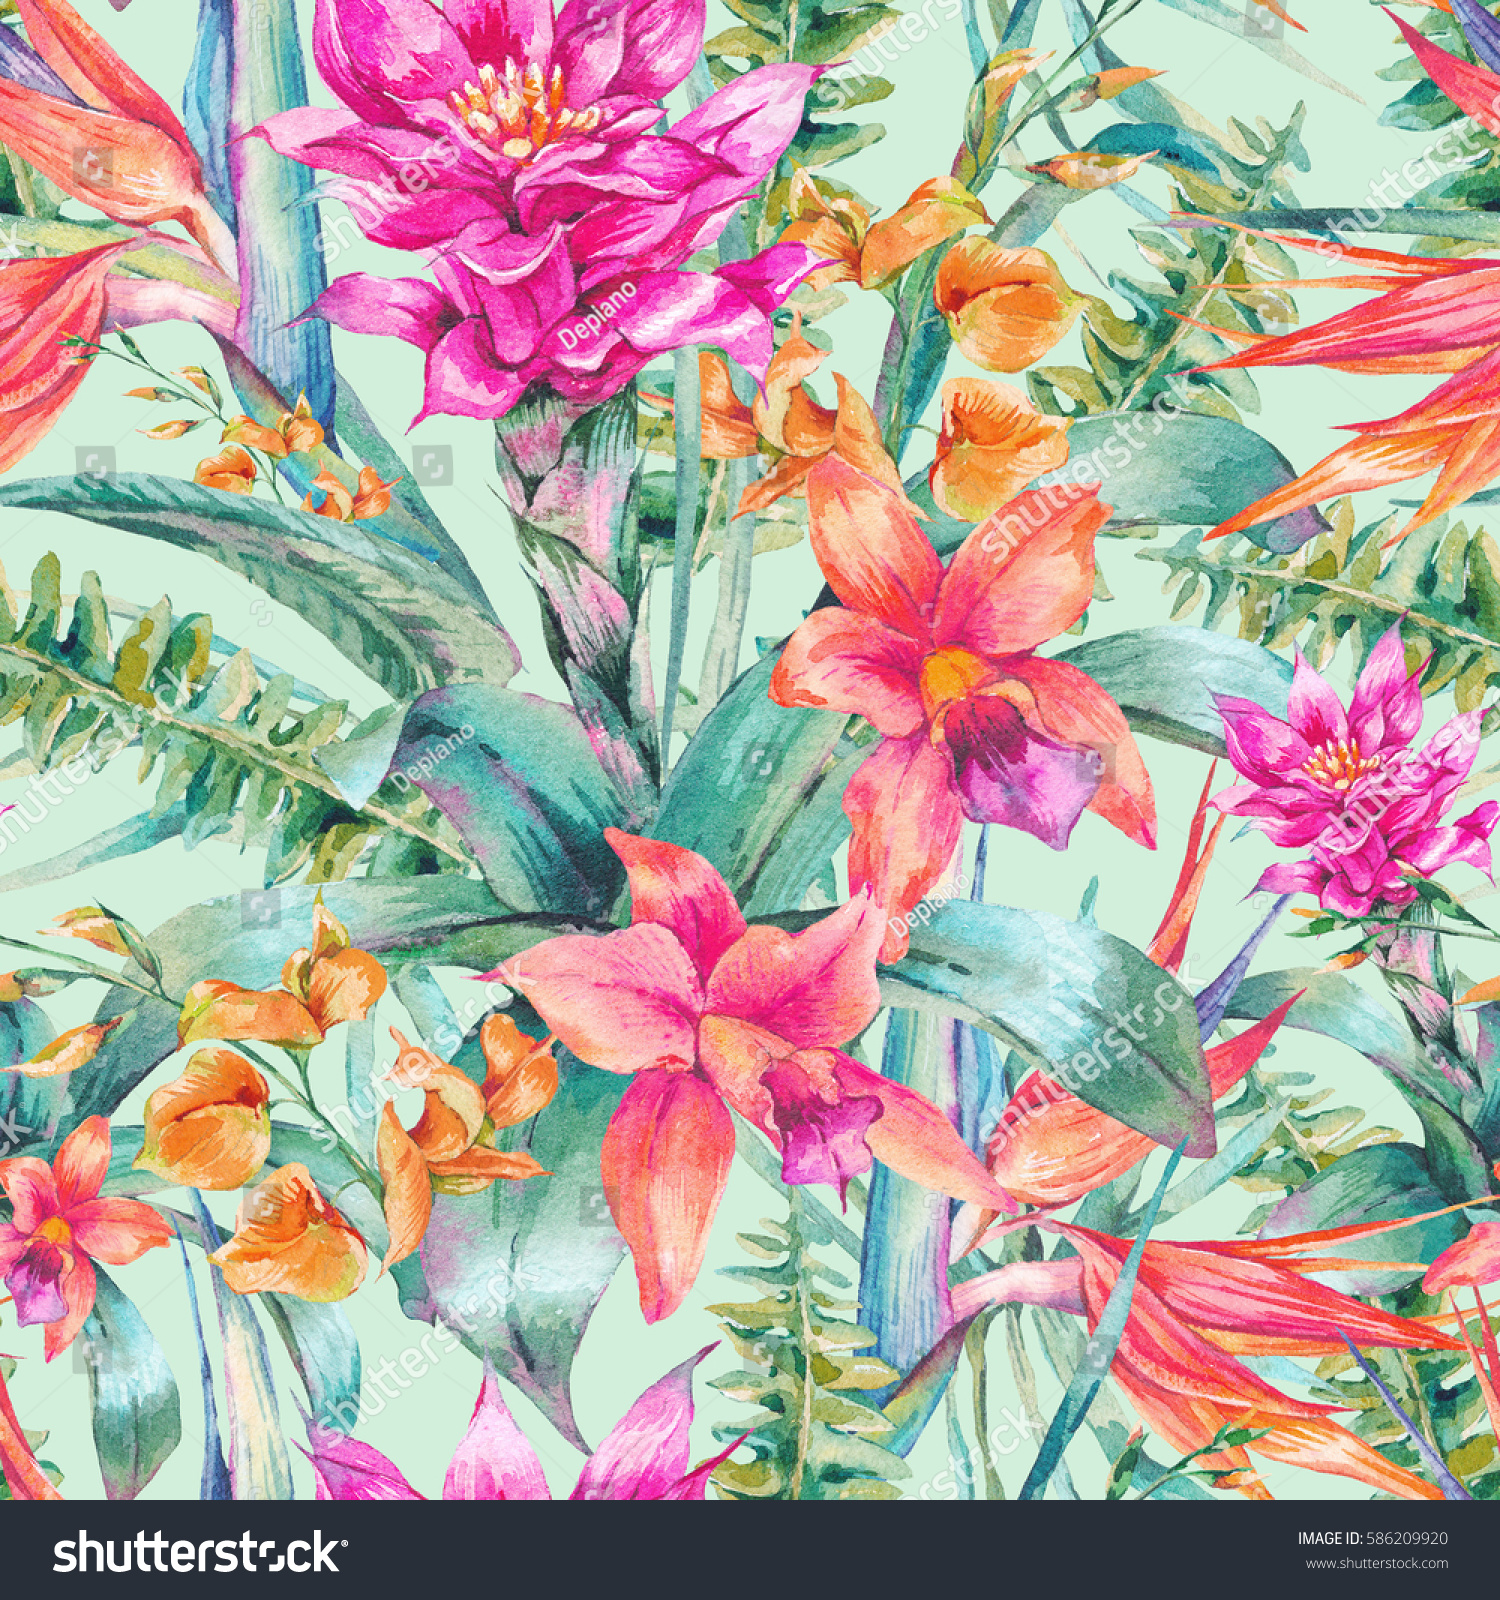 Vintage Style Tropical Bird And Flowers Background: Watercolor Vintage Floral Tropical Seamless Pattern Stock